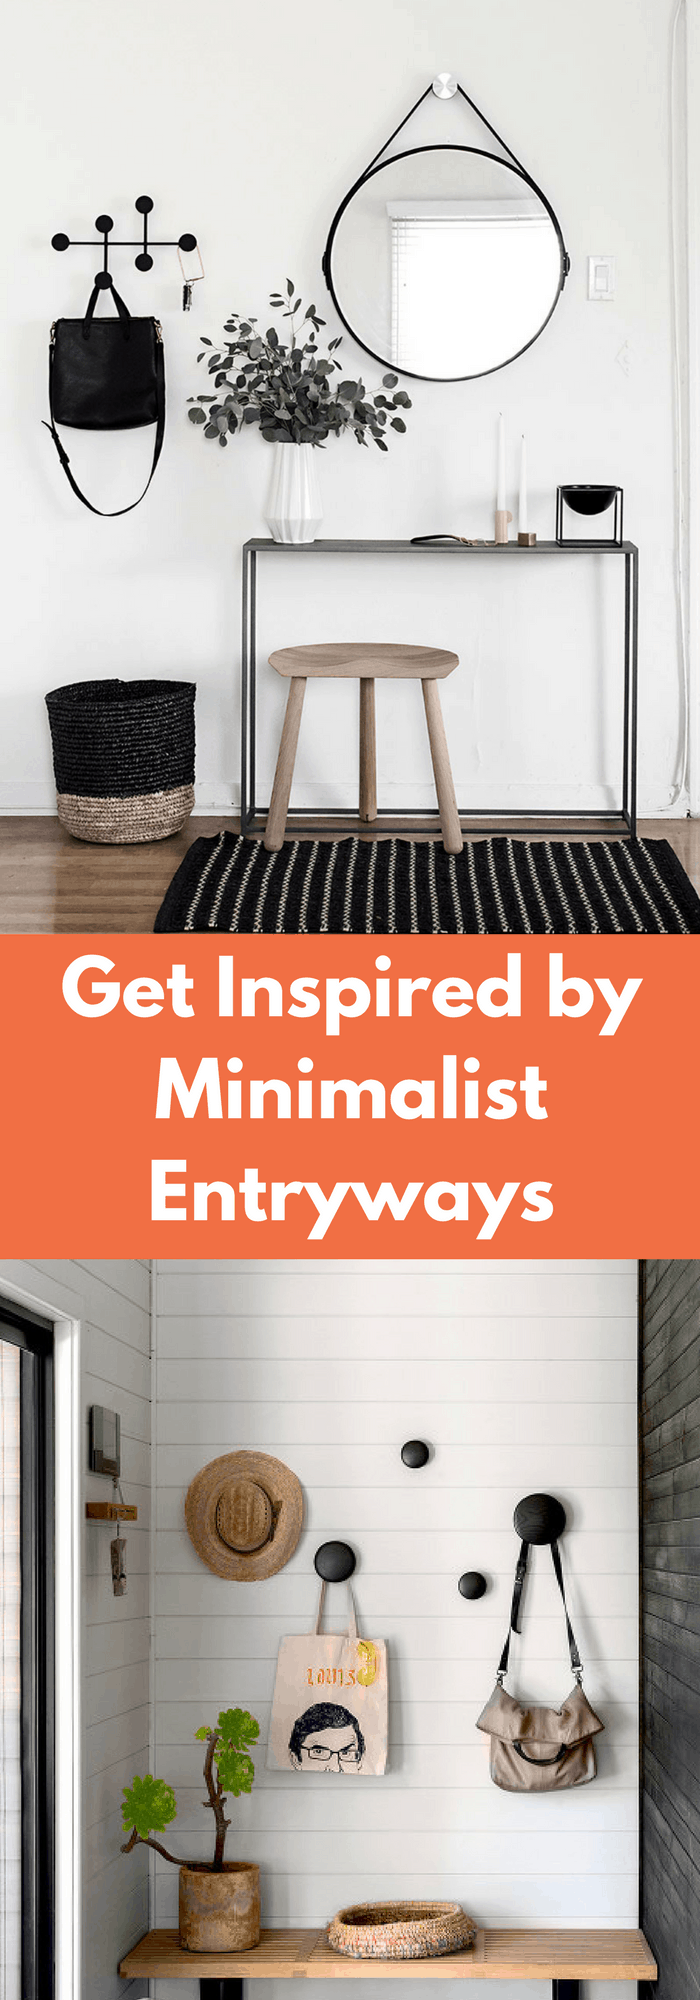 Home decor- MINIMILAST ENTRYWAYS INSPIRATION